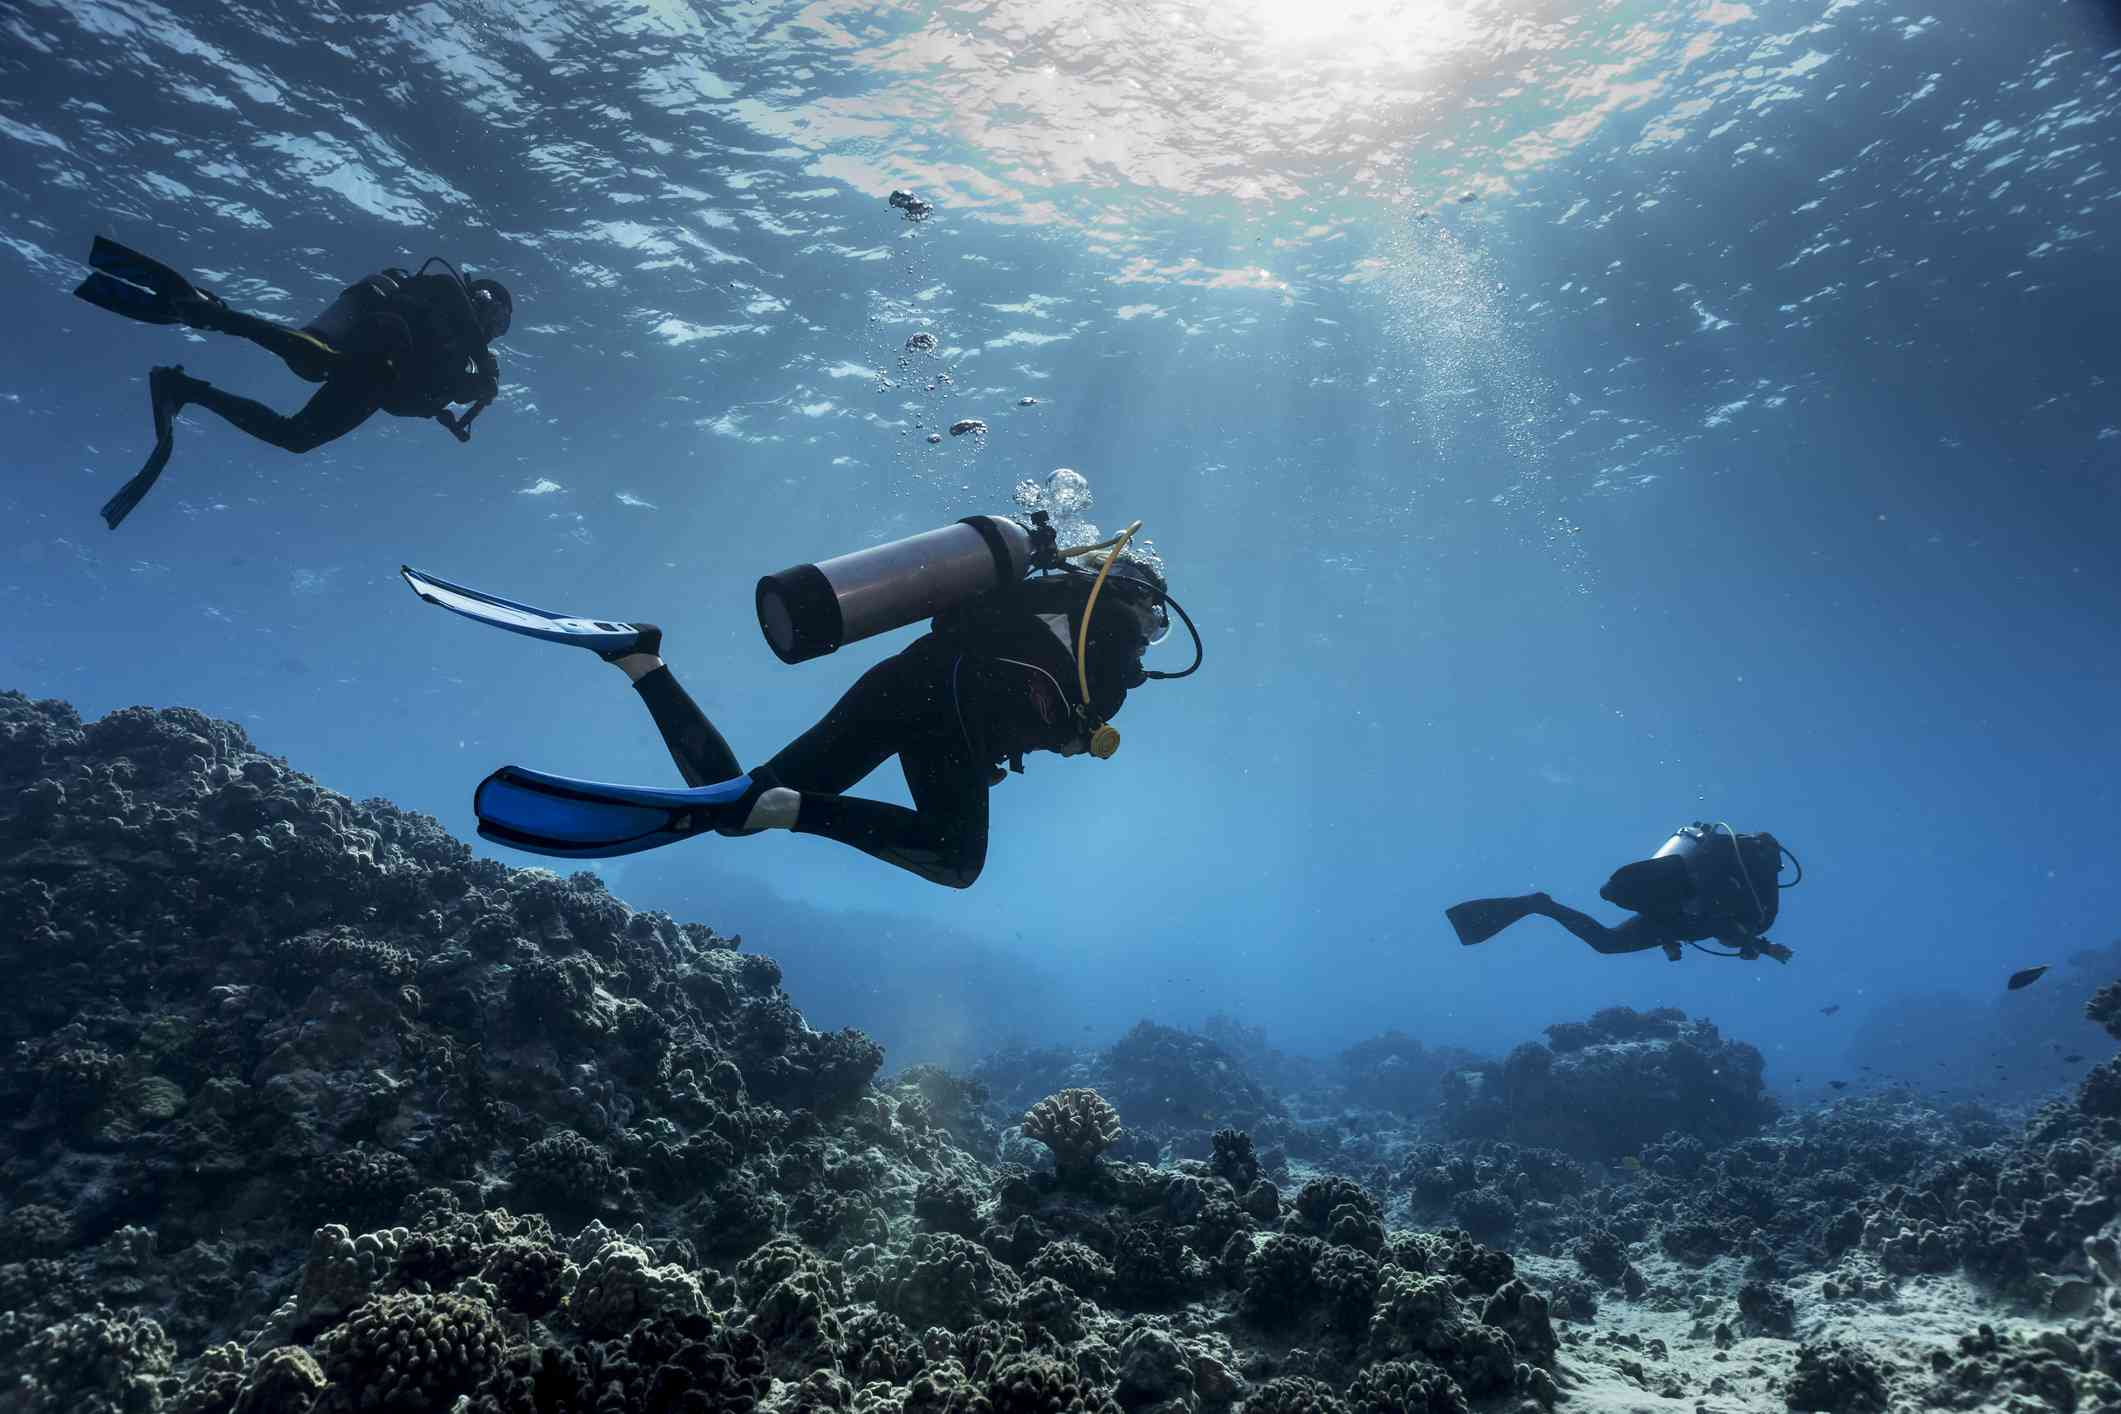 Scuba divers from Big island Divers swimming along the edge of a coral reef off the Kona coast